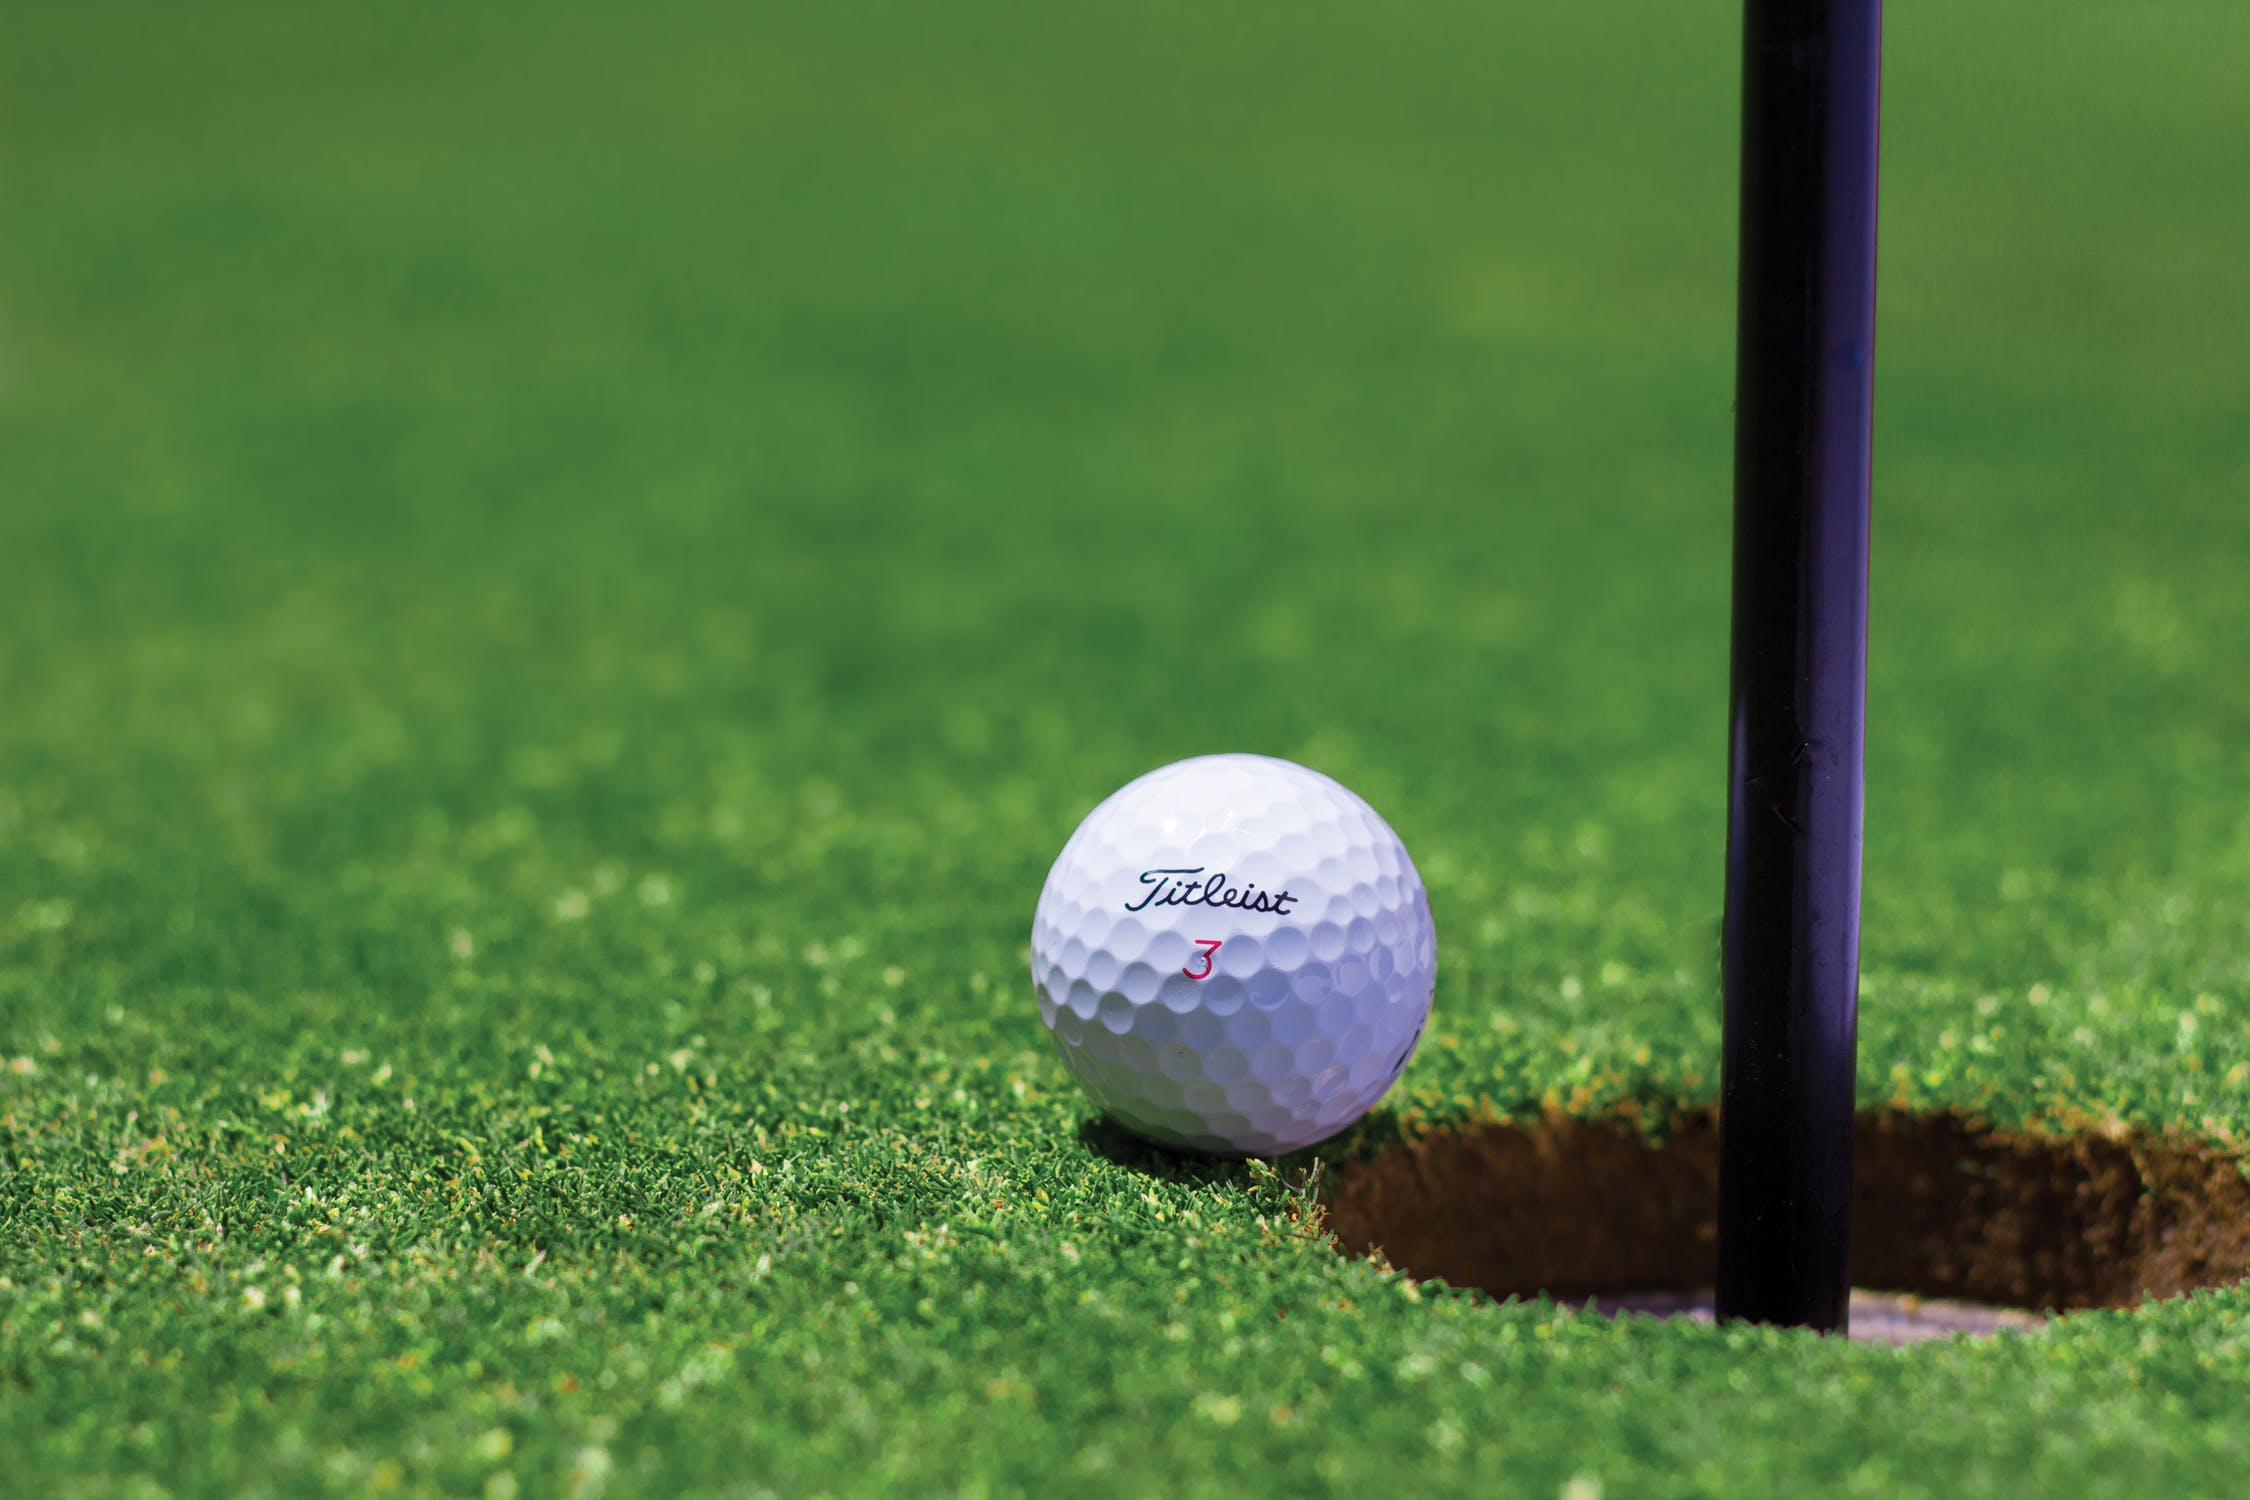 Training Qualifications UK to hit the links for Hand on Heart charity